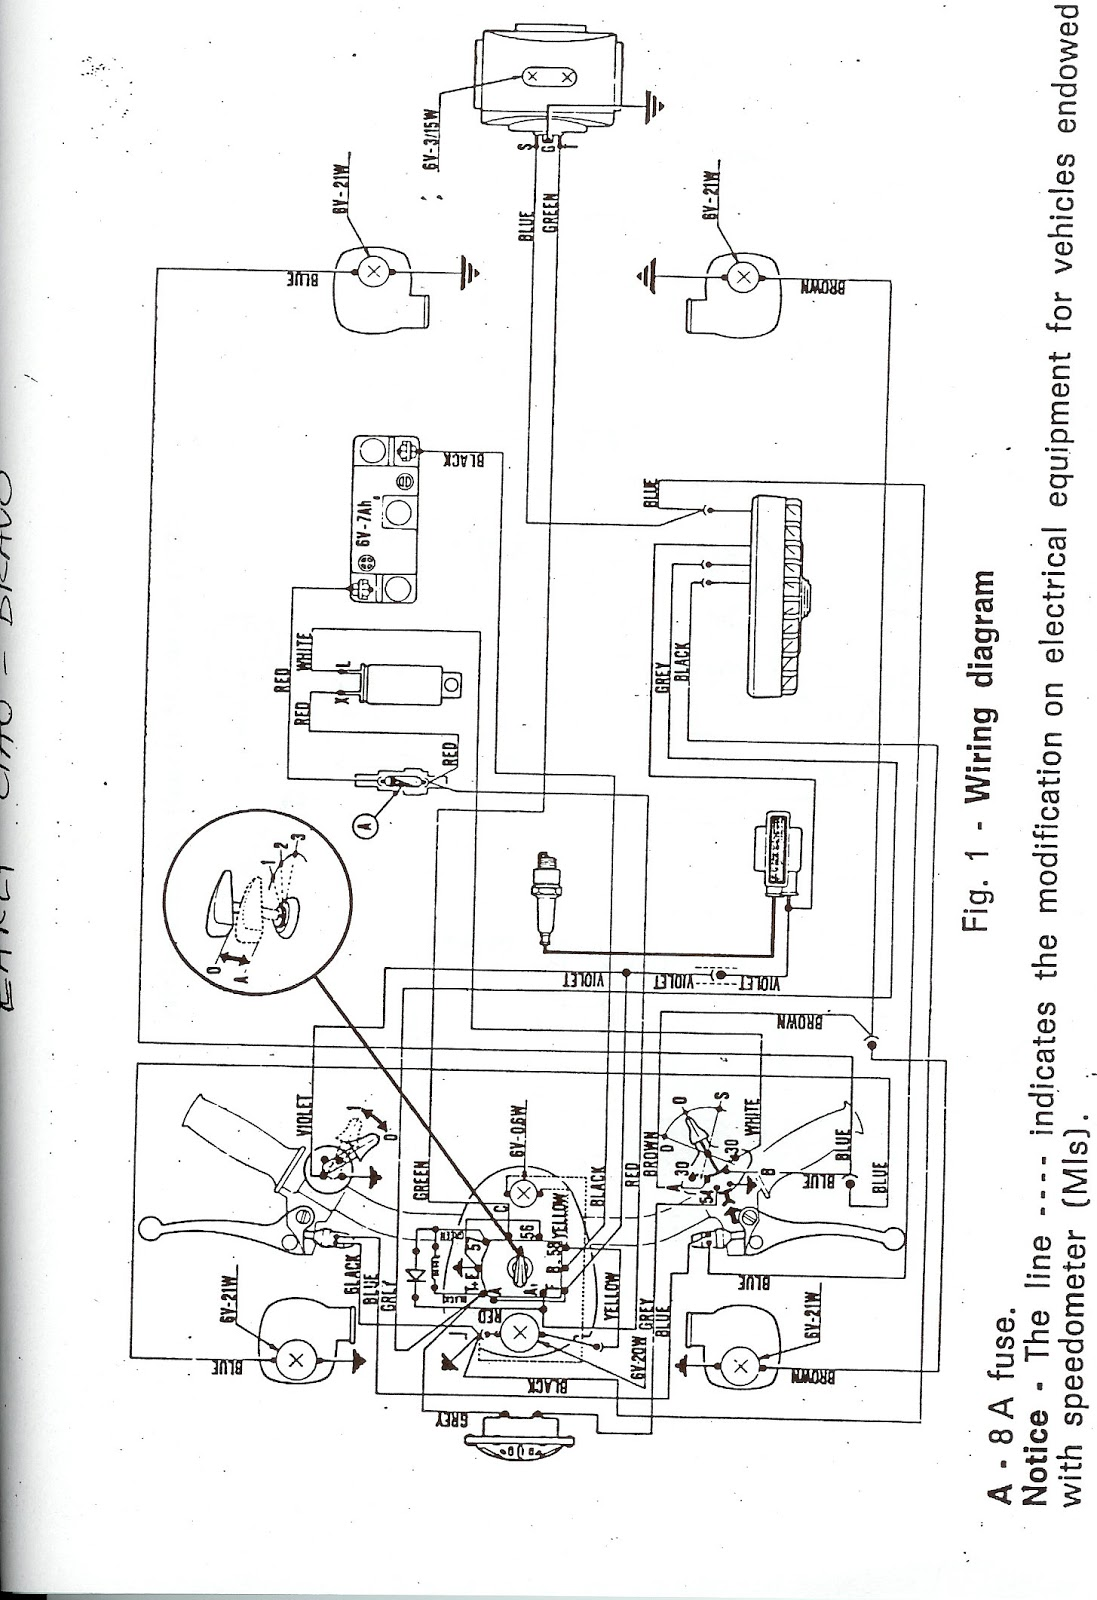 Deadped Vespa Wiring In A Nutshell Incandescent Light Bulb Diagram Free Download